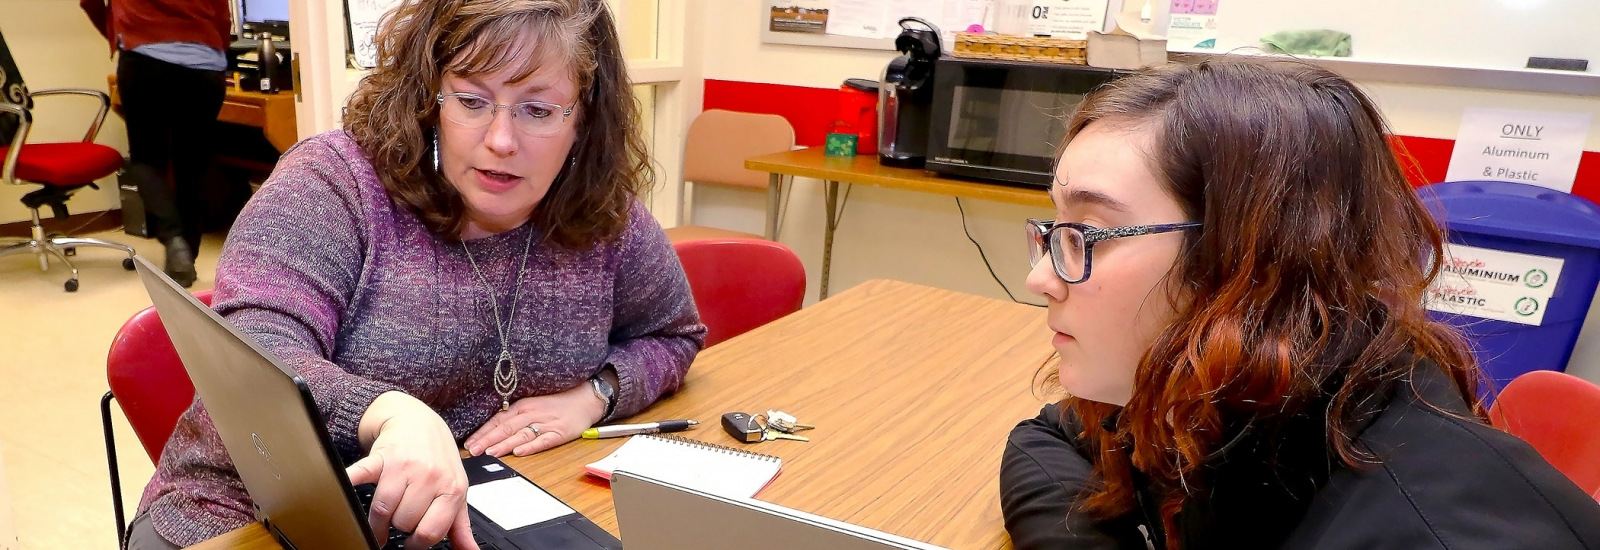 An academic advisor seated at a table with a female student both looking at a laptop screen while the academic advisor points at the screen